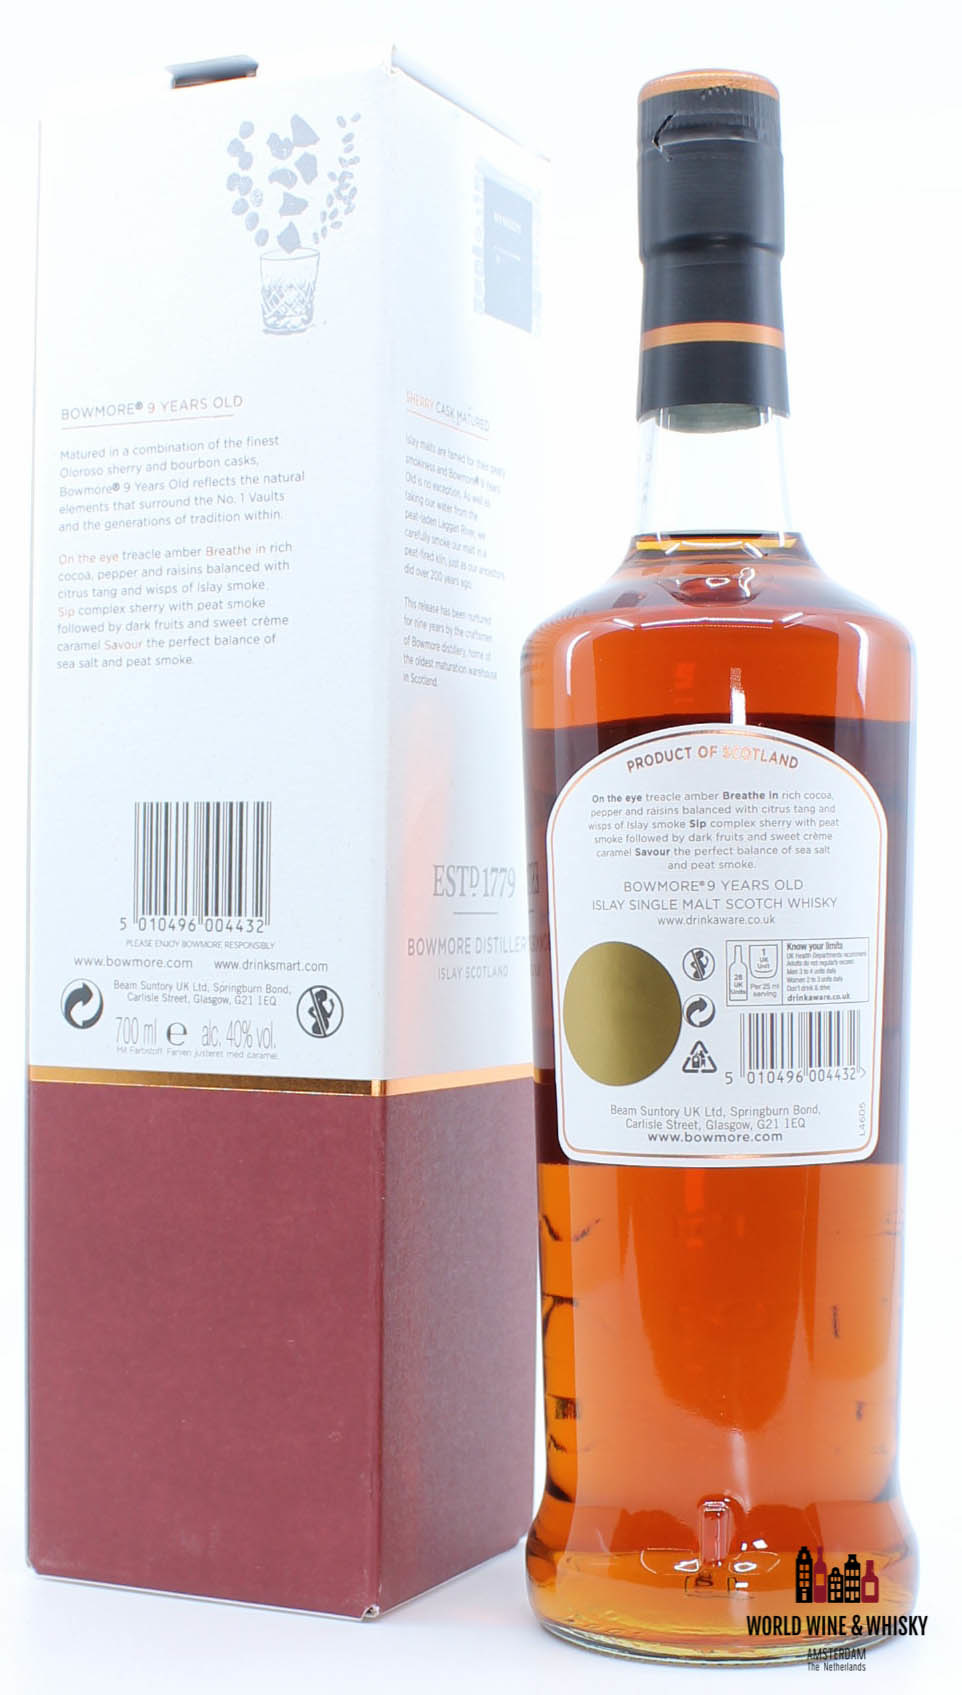 Bowmore Bowmore 9 Years Old 2007 2016 Sherry Oak Matured - Limited Edition 40%